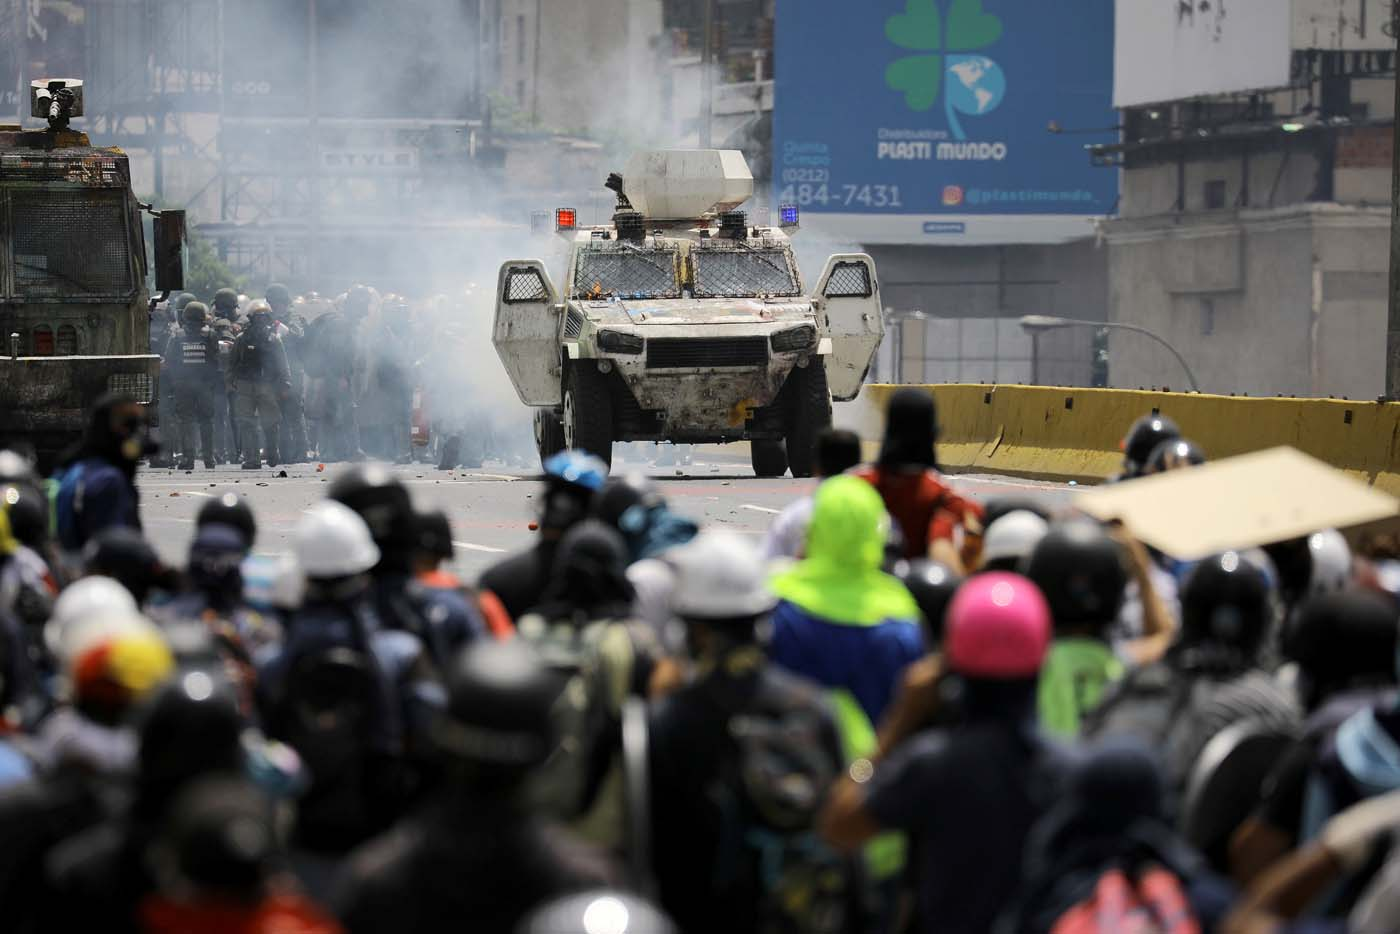 Demonstrators clash with riot security forces during a rally against Venezuela's President Nicolas Maduro in Caracas, Venezuela, May 26, 2017. REUTERS/Carlos Barria